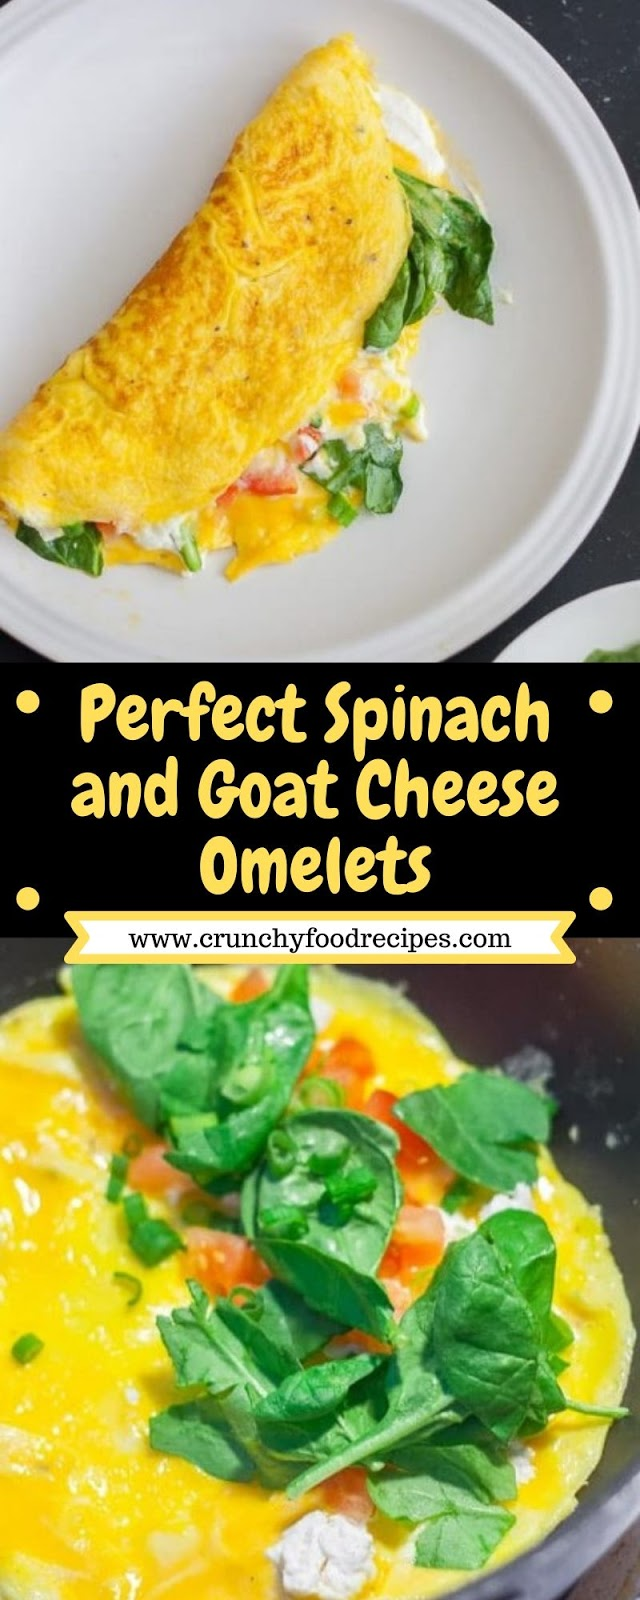 Perfect Spinach and Goat Cheese Omelets